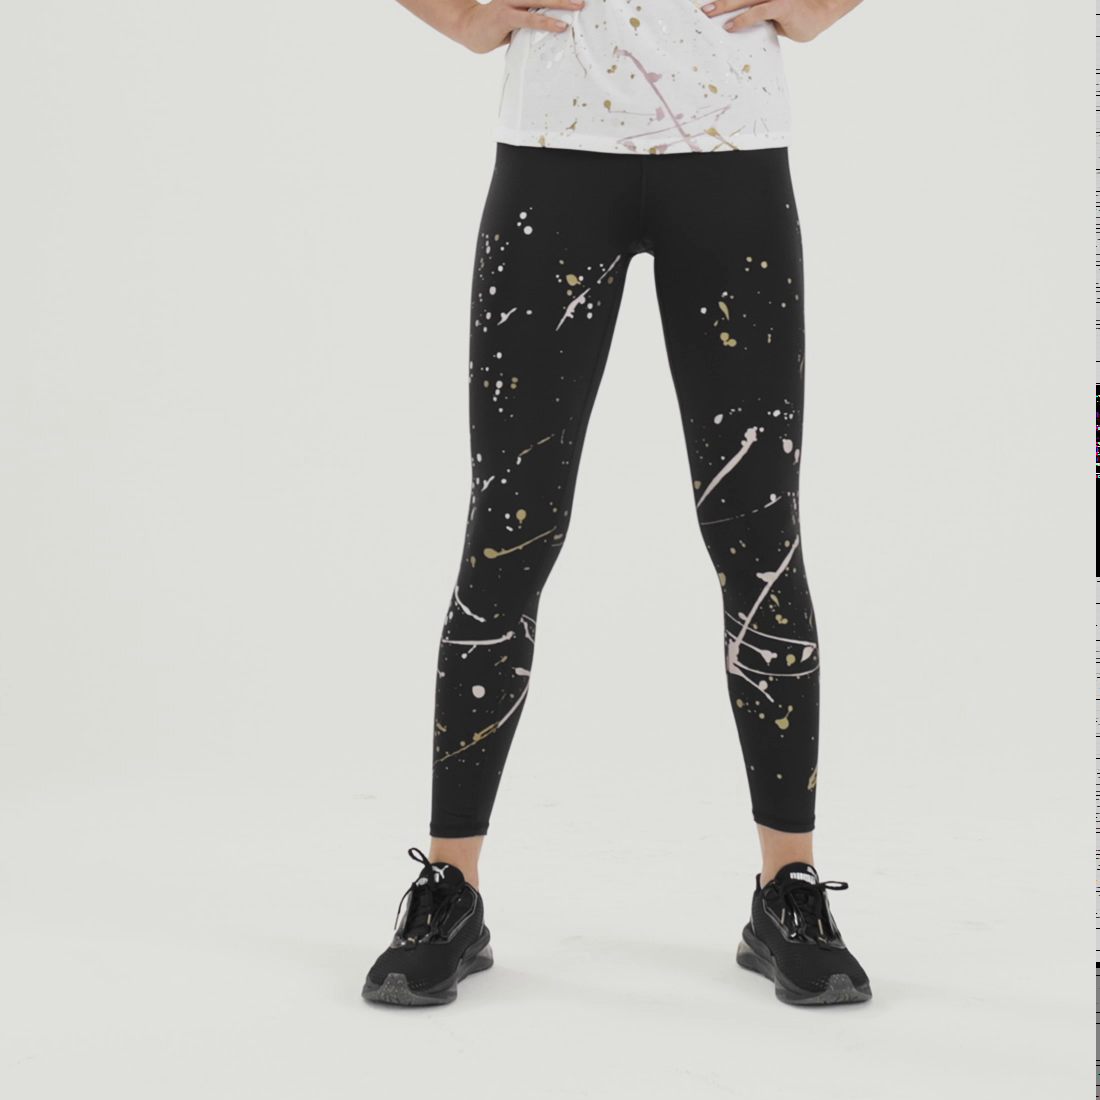 Image PUMA Metal Splash Splatter Women's Training Tights #6